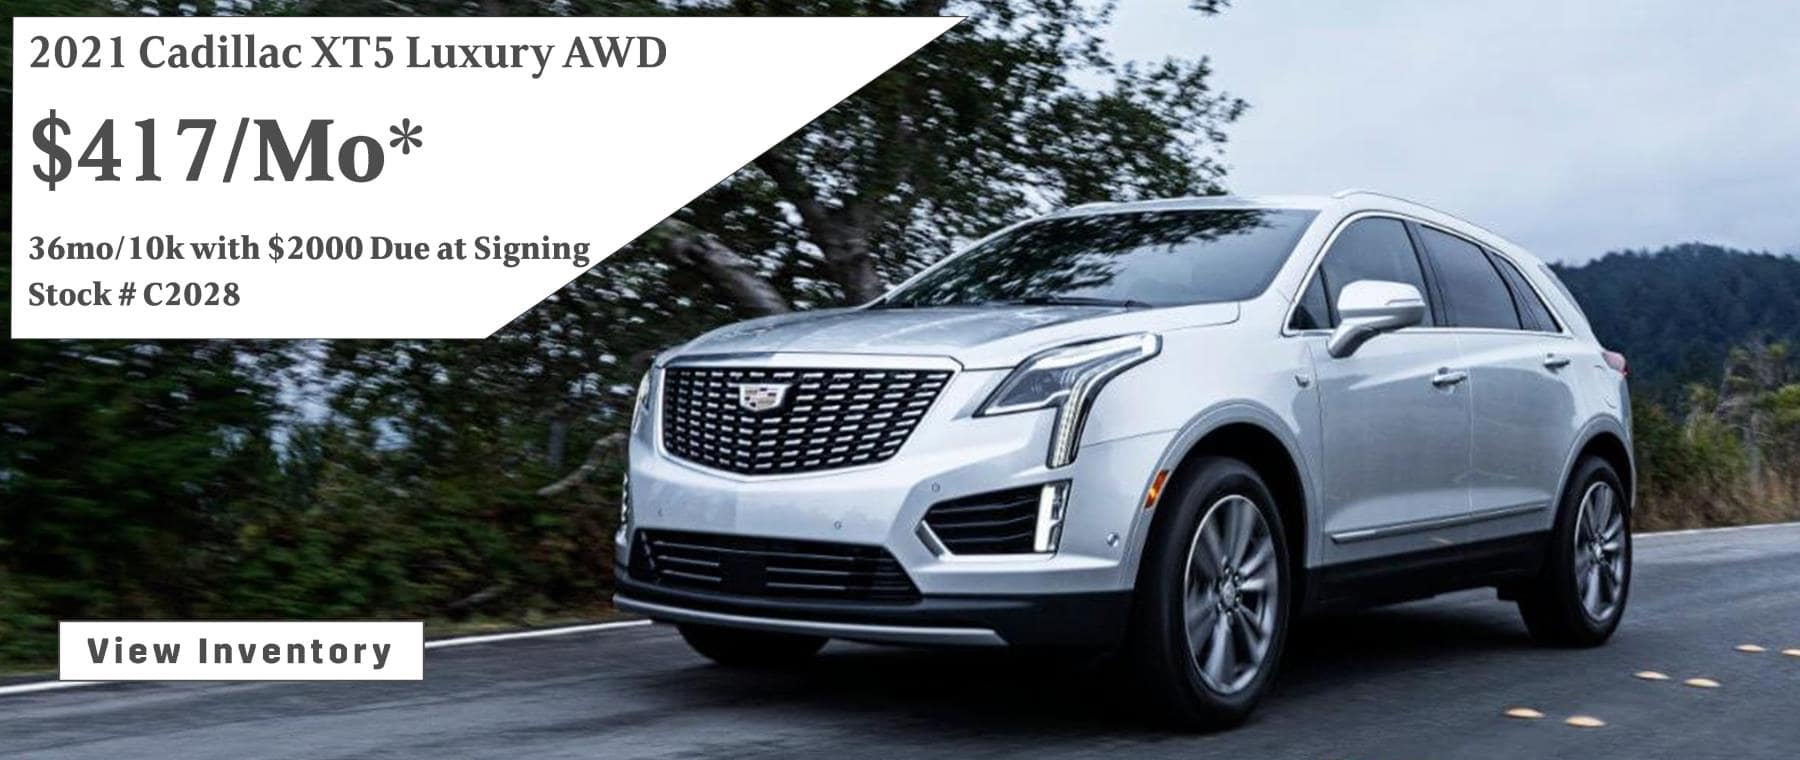 March Cadillac XT5 Lease Special $417/mo*